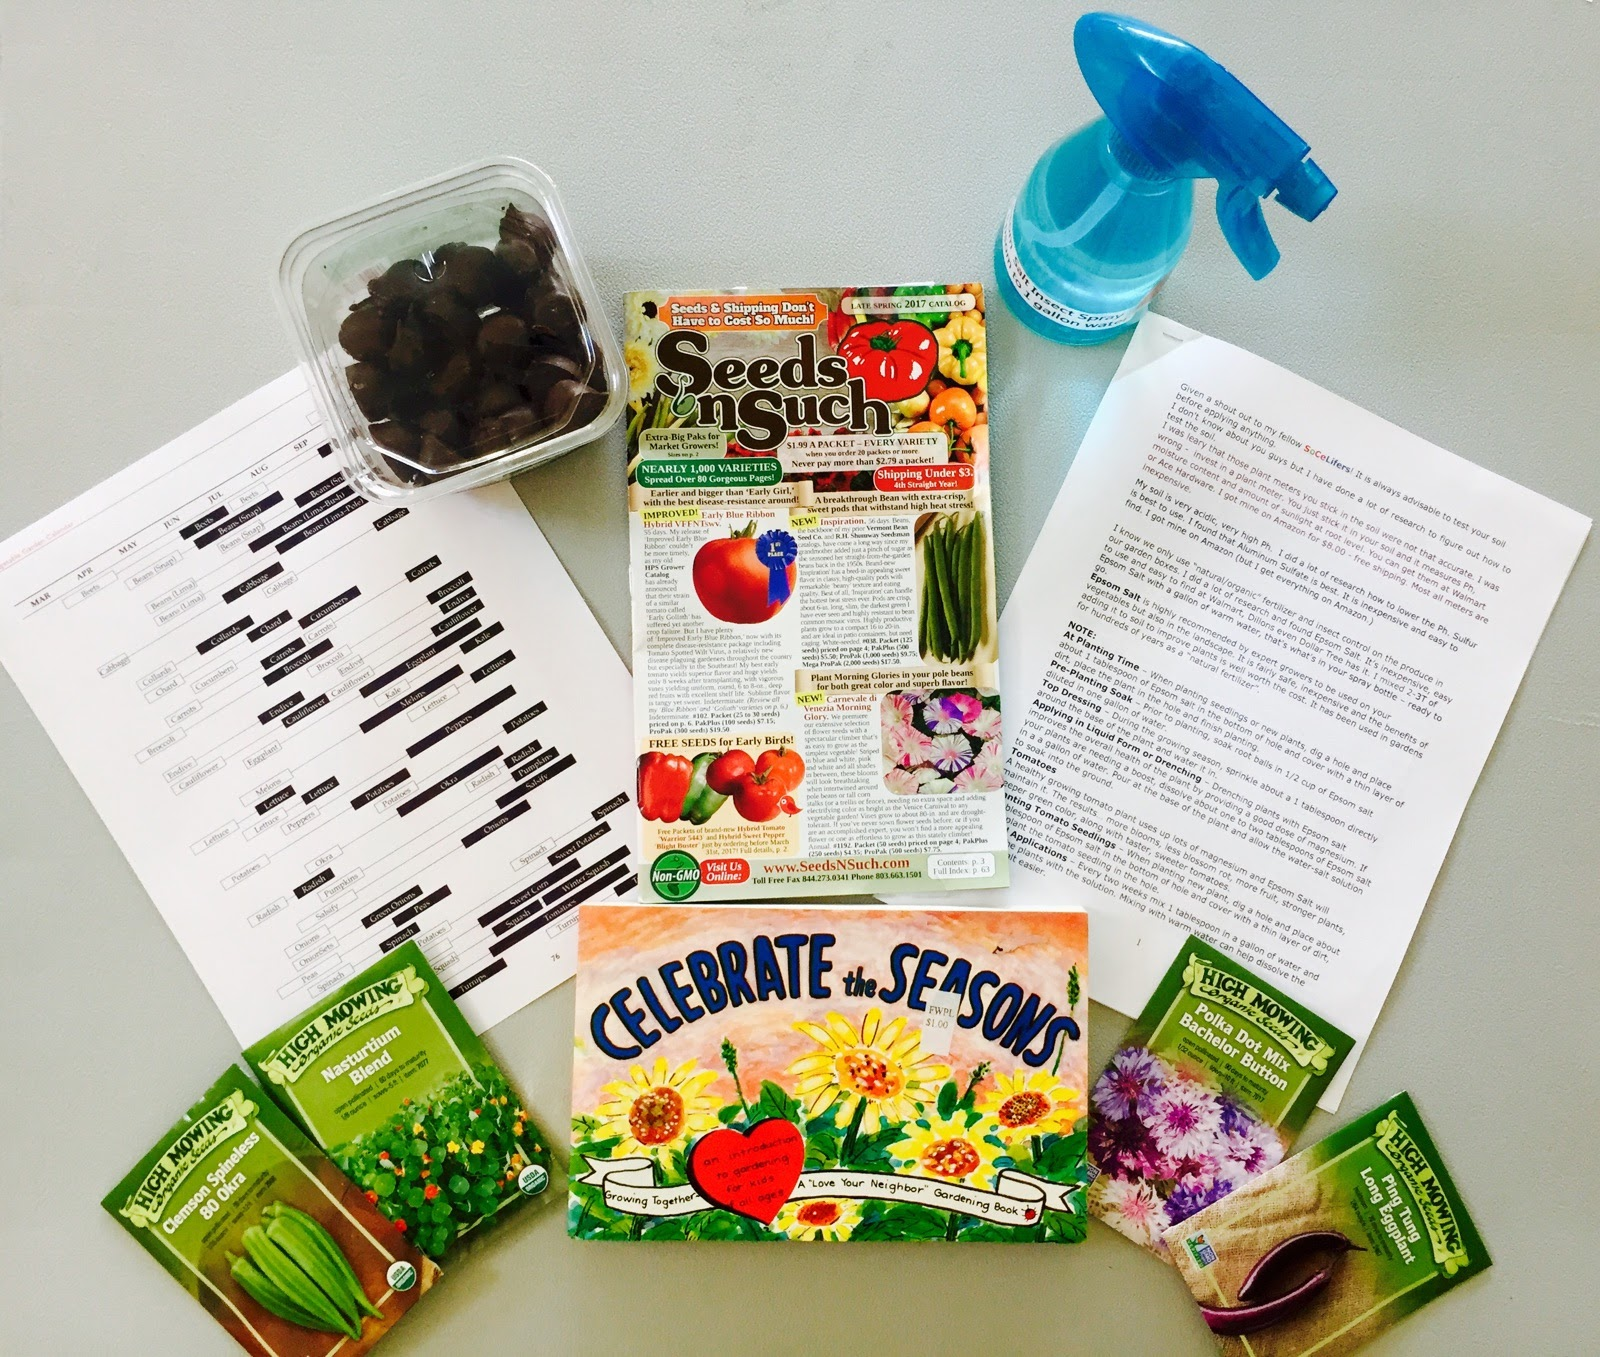 Some of what was shared at the gathering (including dark chocolate mints!)